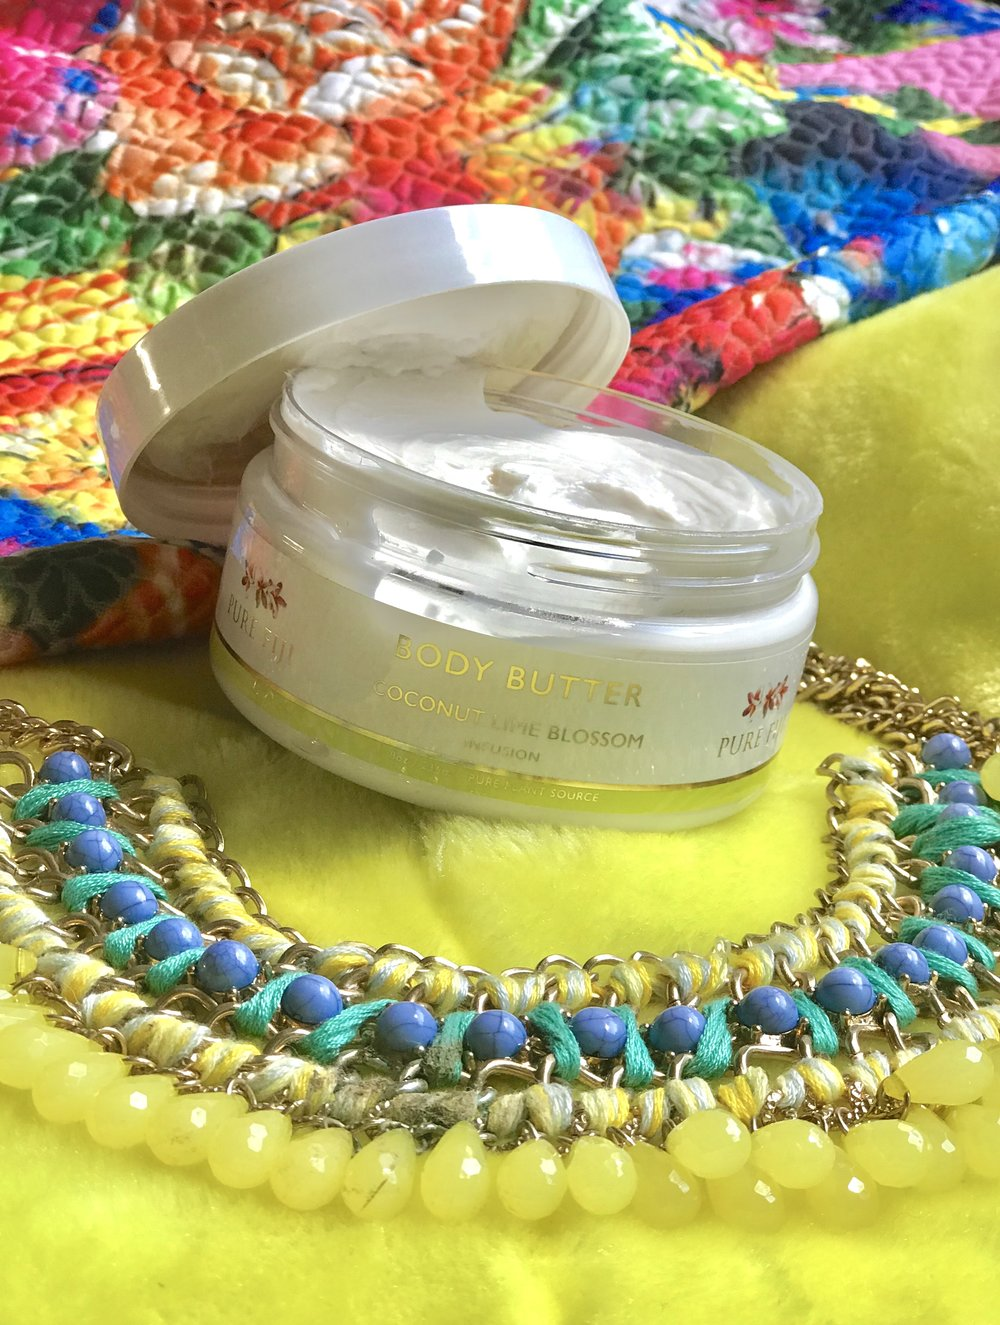 Pure Fiji Body Butter - image BeautyEQ